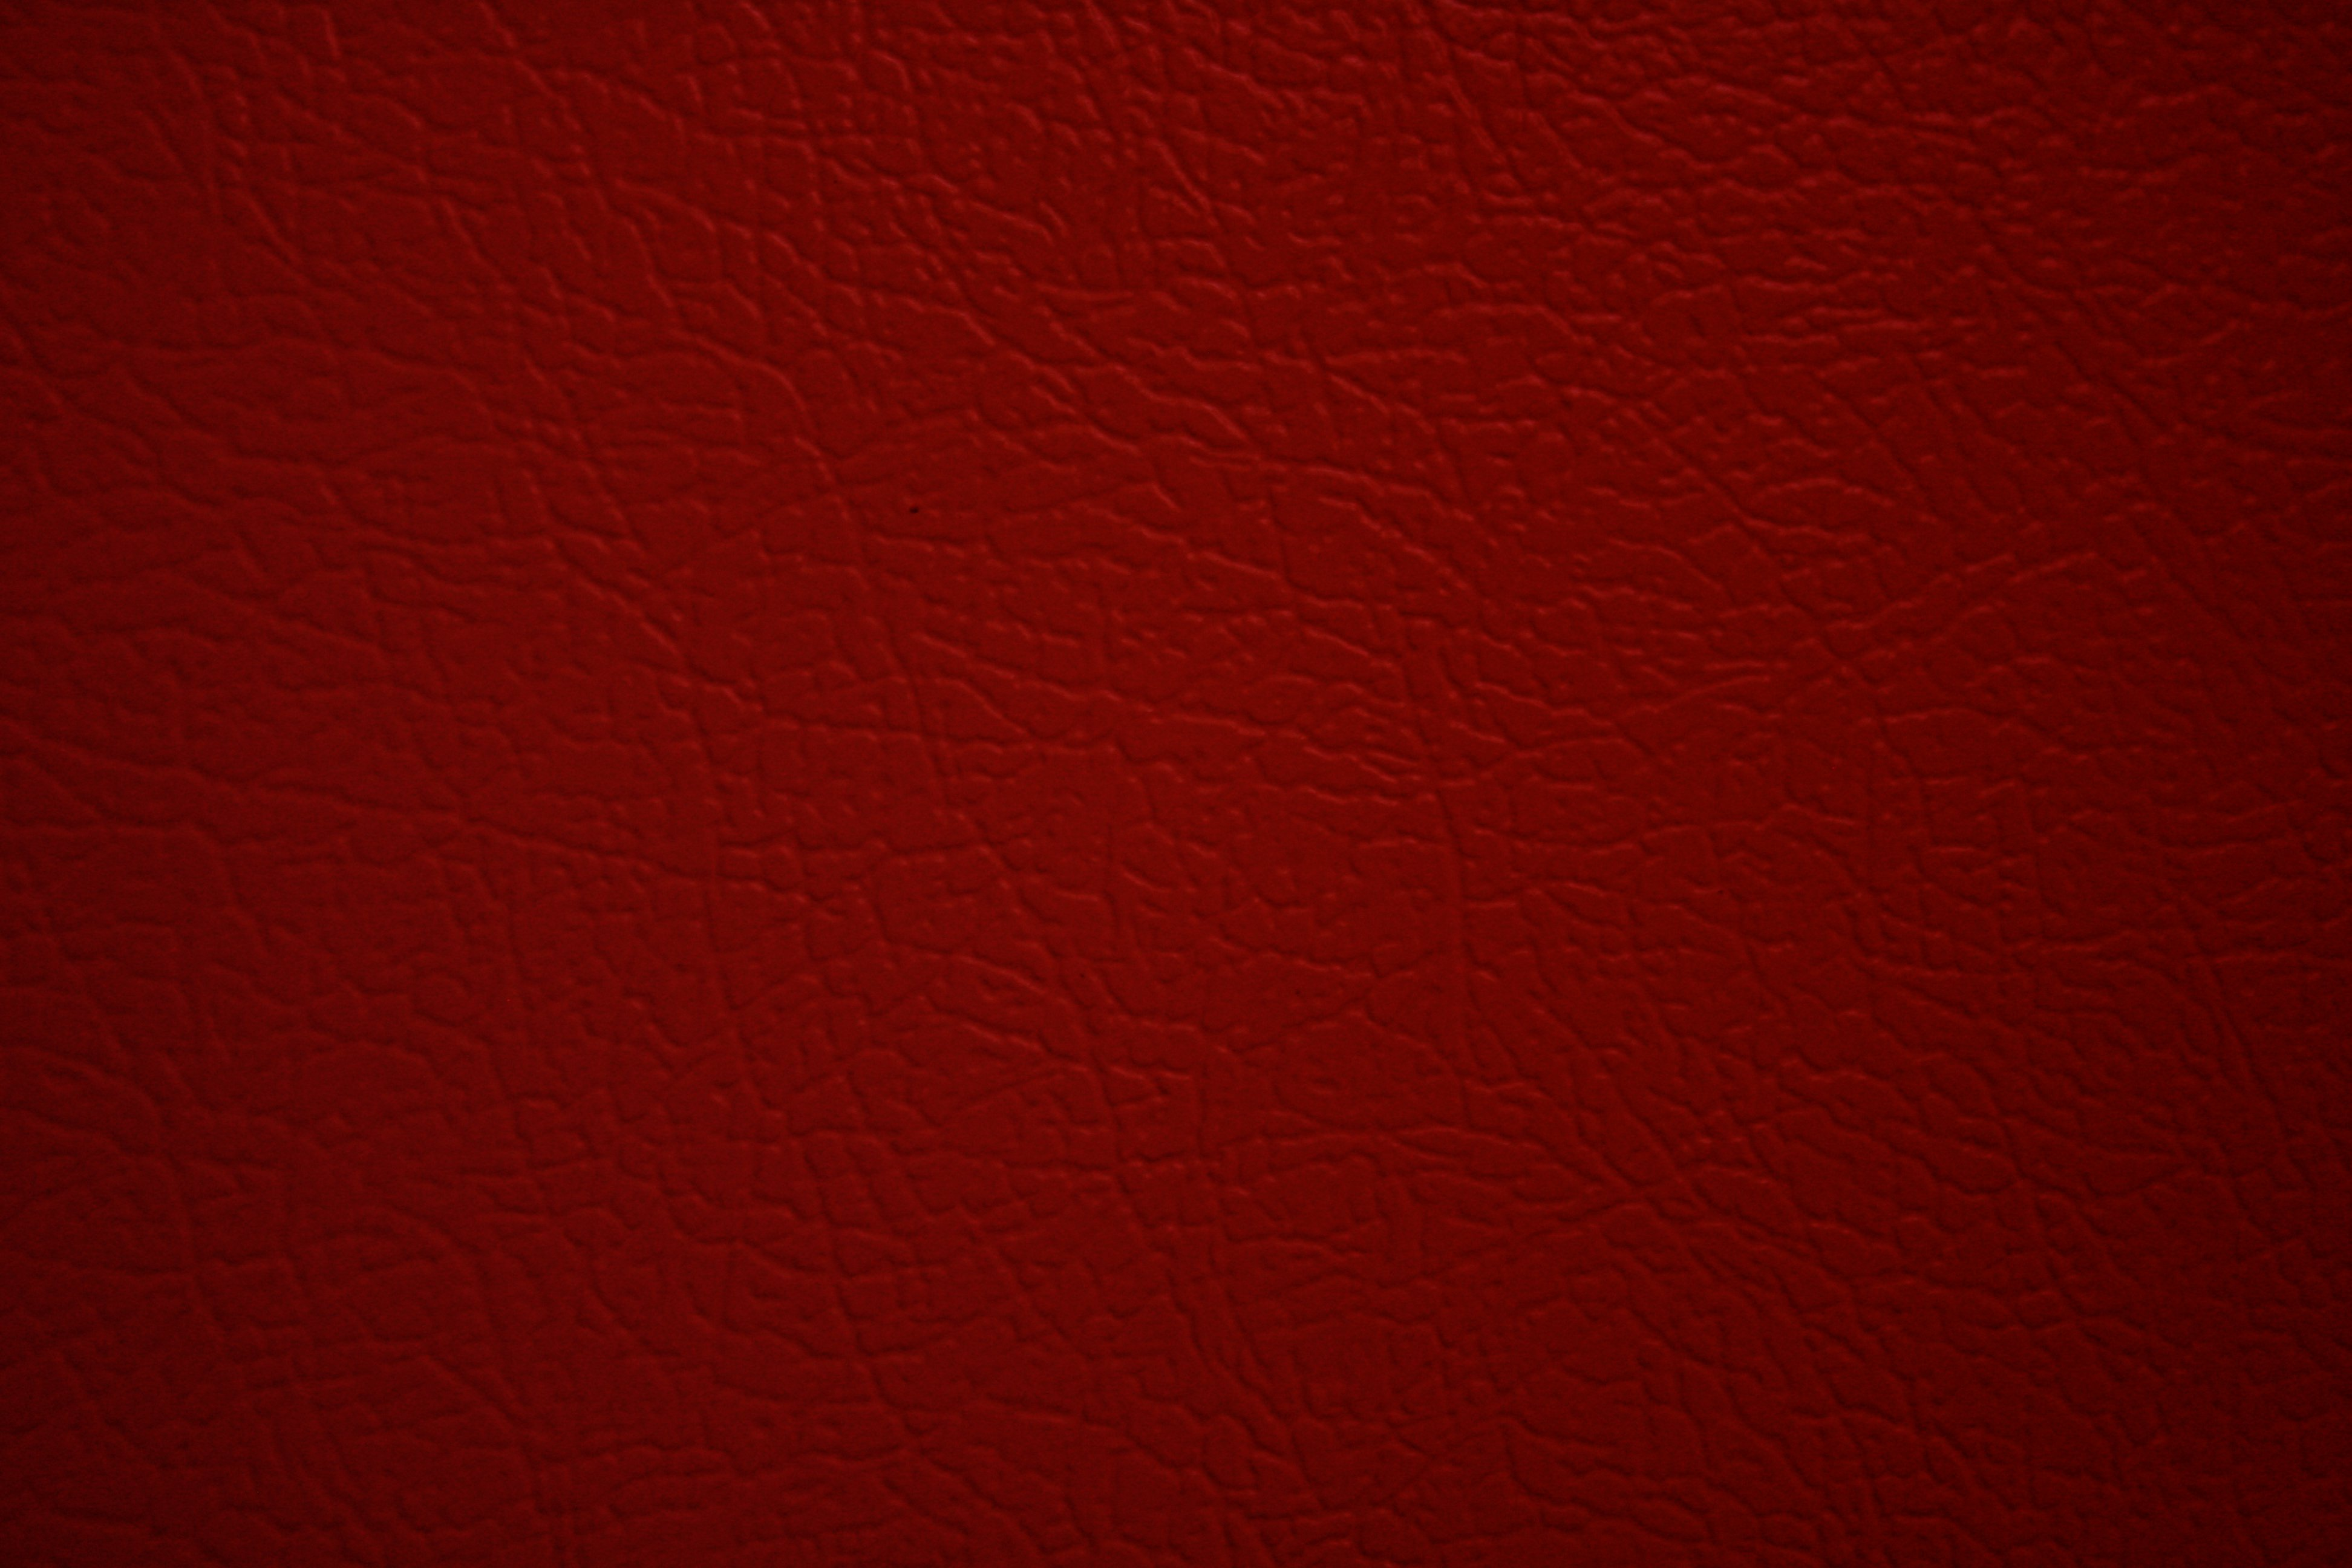 Leather Textures clipart red leather Photographs Domain Leather Leather Photos